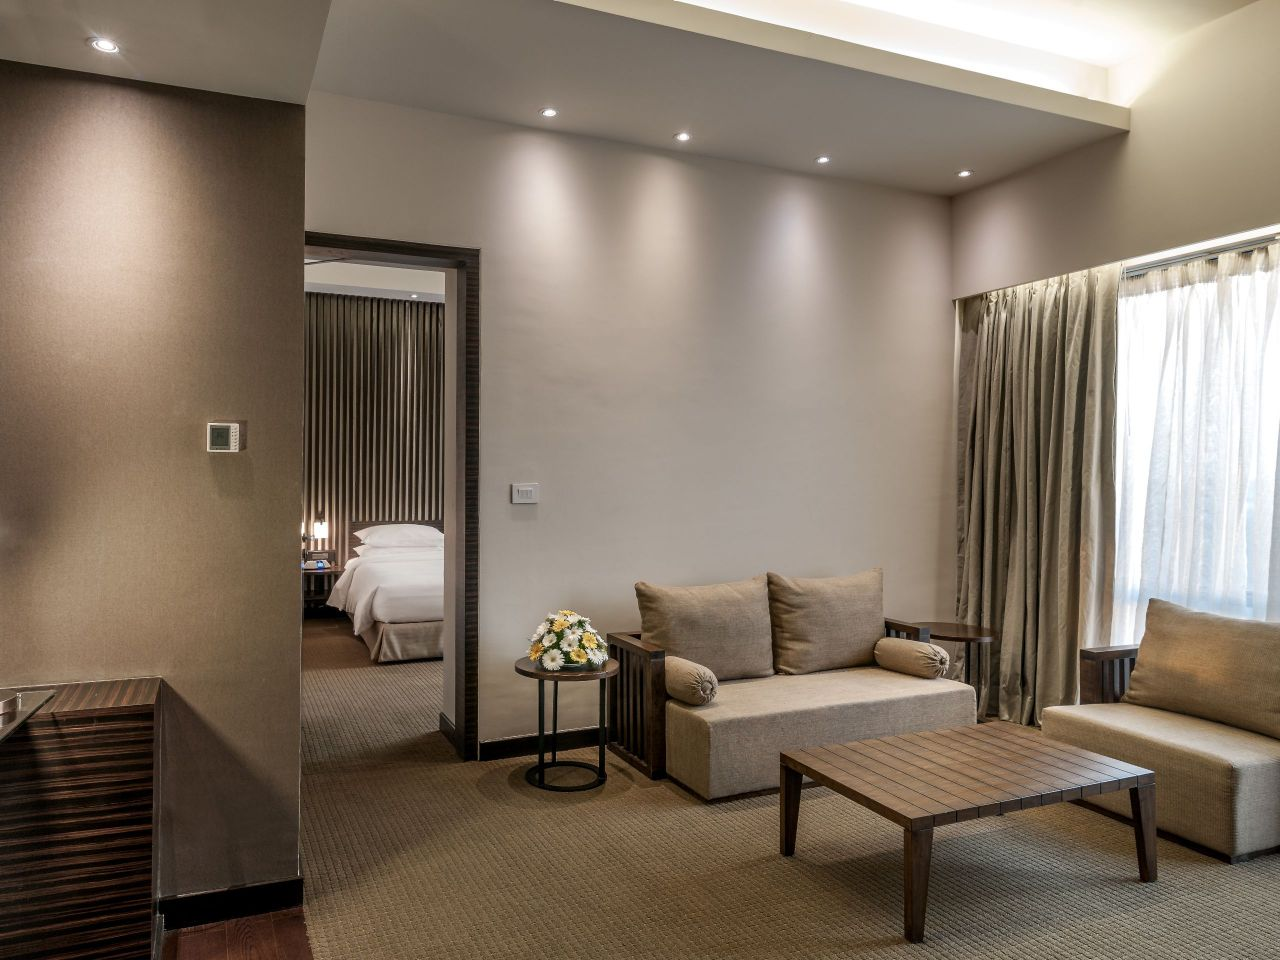 Hyatt Raipur Bedroom